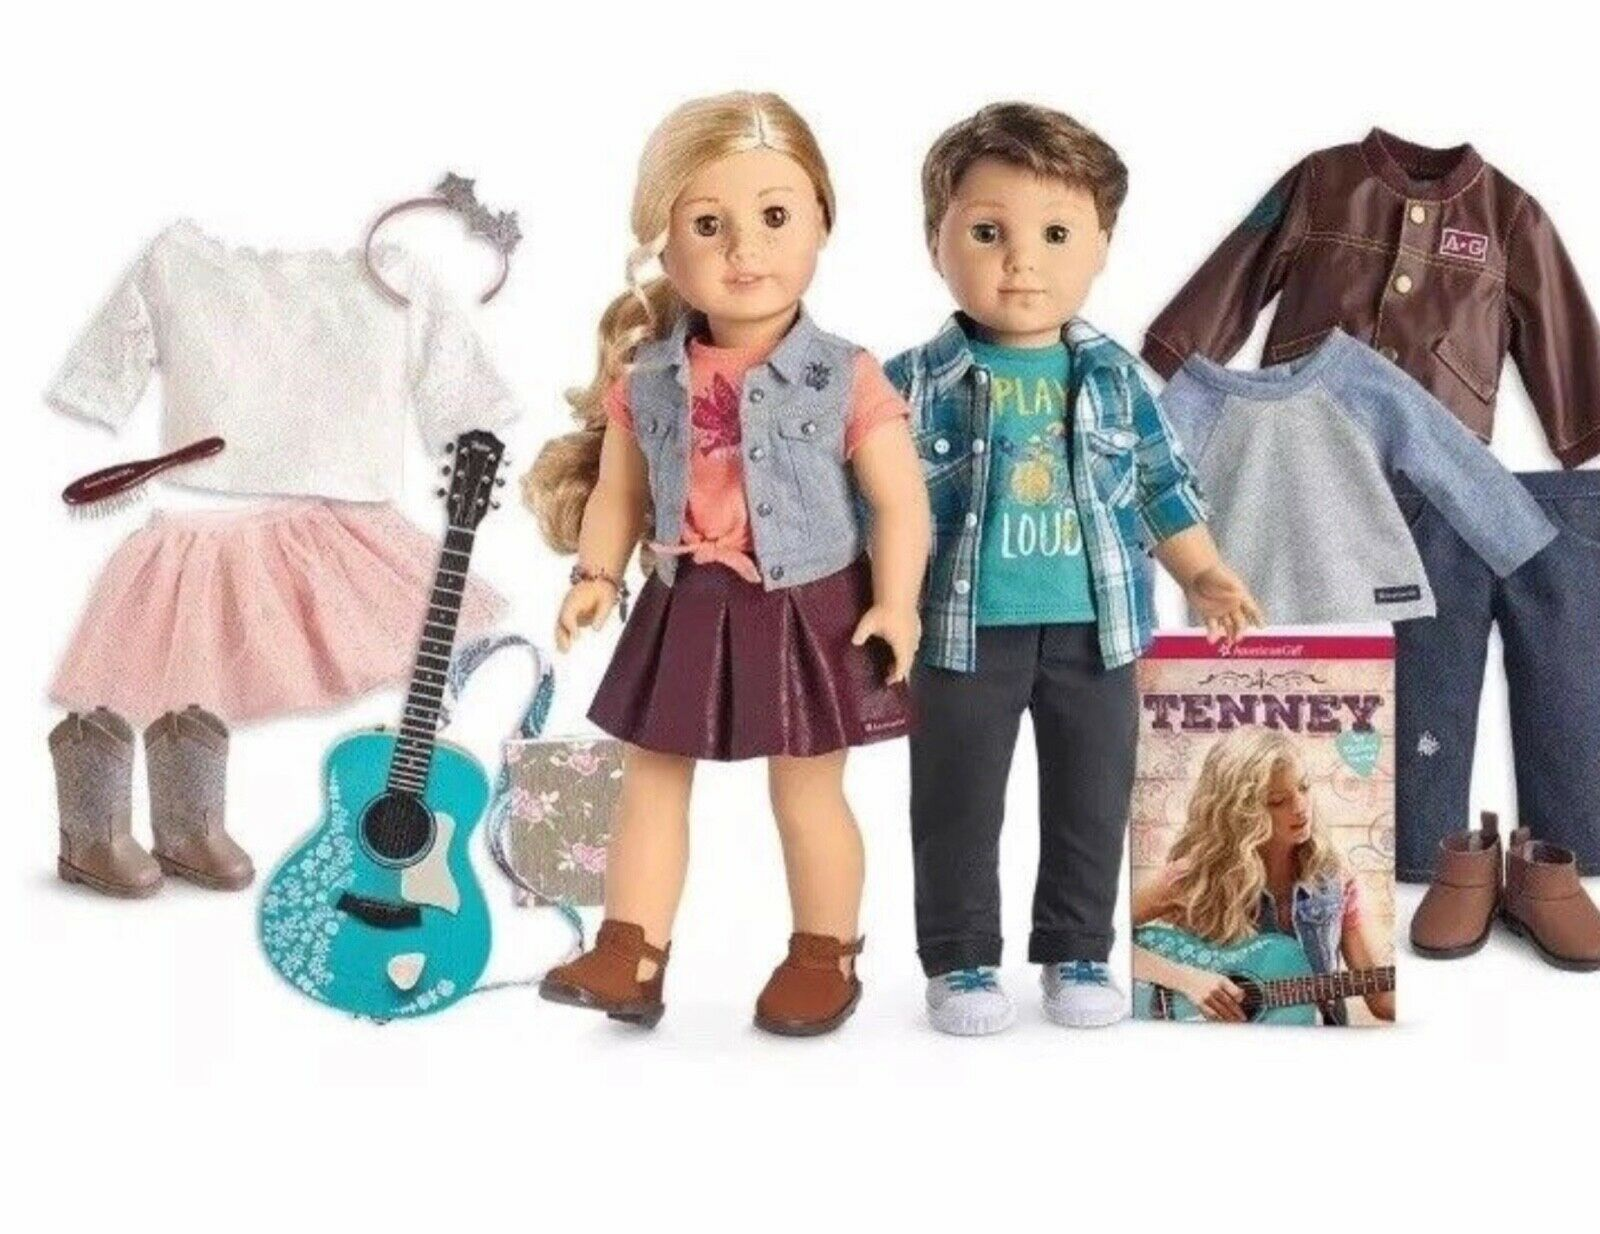 American Girl Tenney Grant, Logan Everet ,Guitar,2 Outfits And Hair Brush